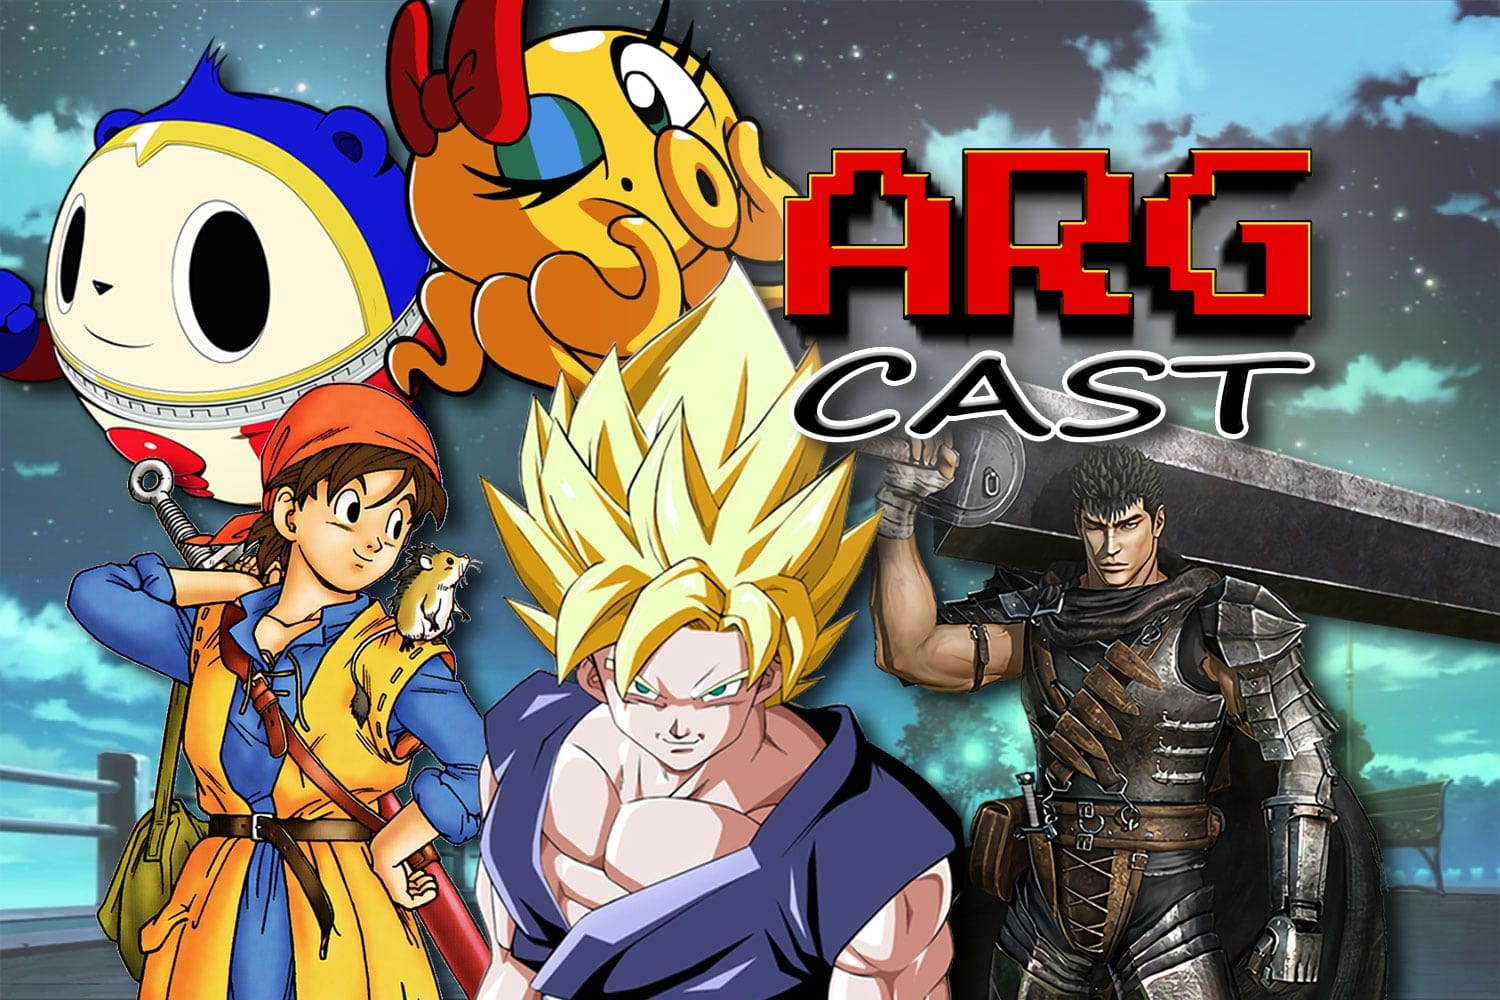 ARGcast #120: Anime Style Retro Games with Evan Bourgault